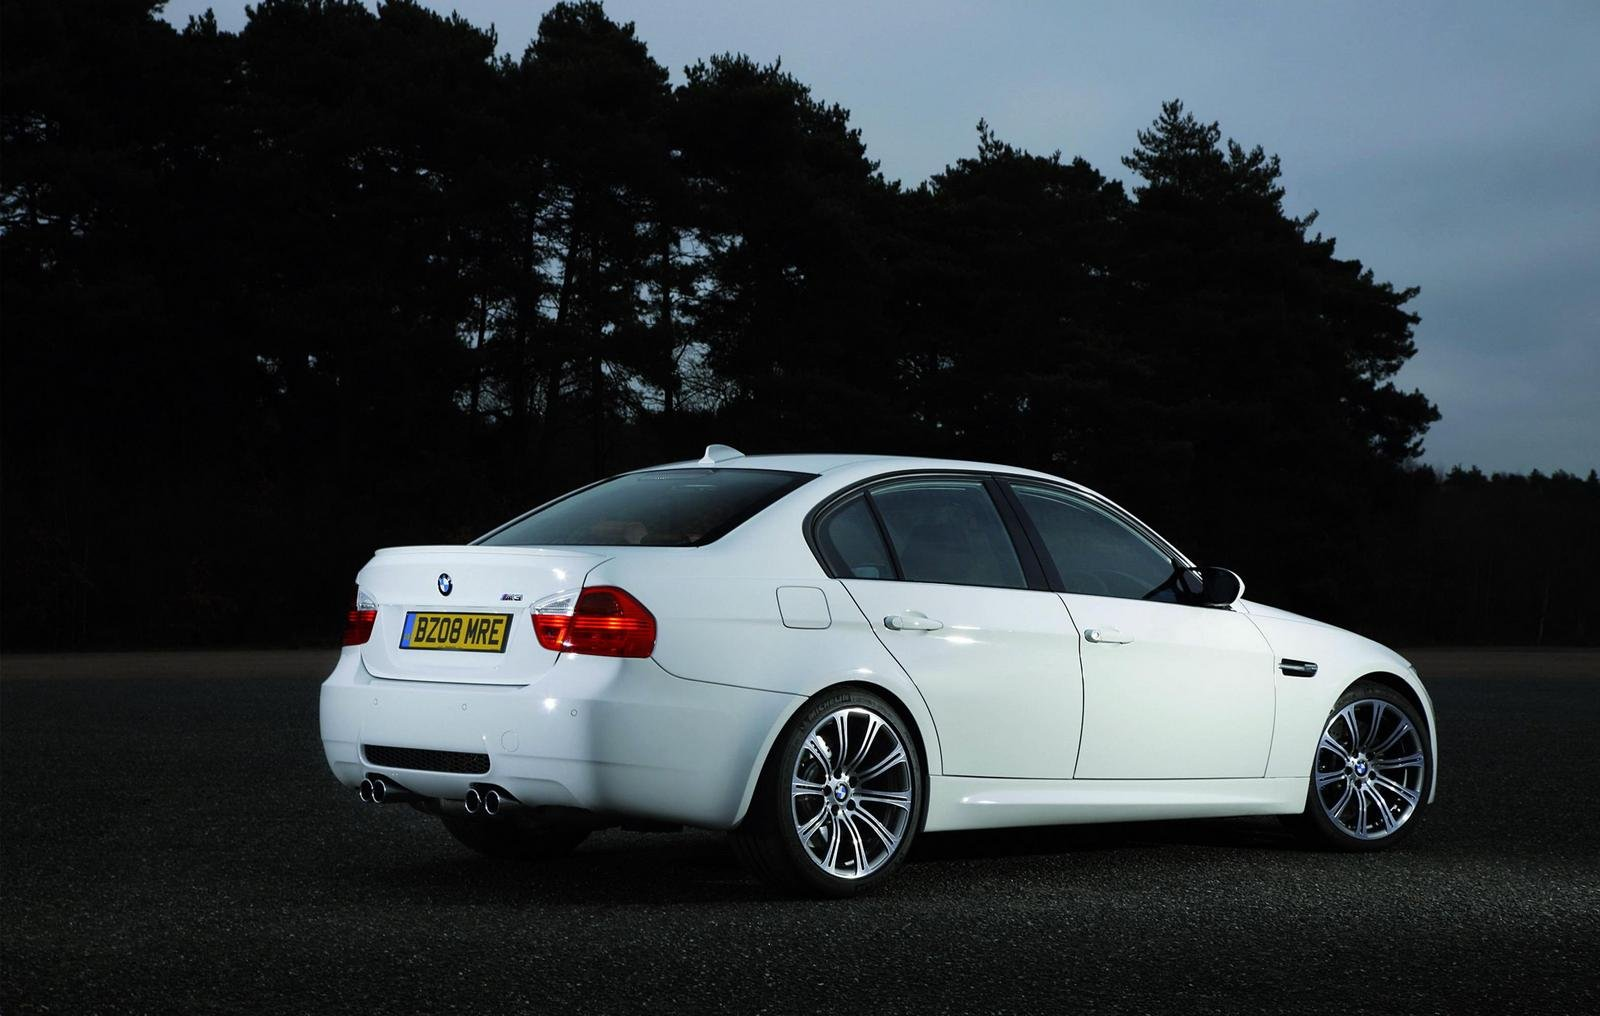 2008 bmw m3 sedan picture 237693 car review top speed. Black Bedroom Furniture Sets. Home Design Ideas